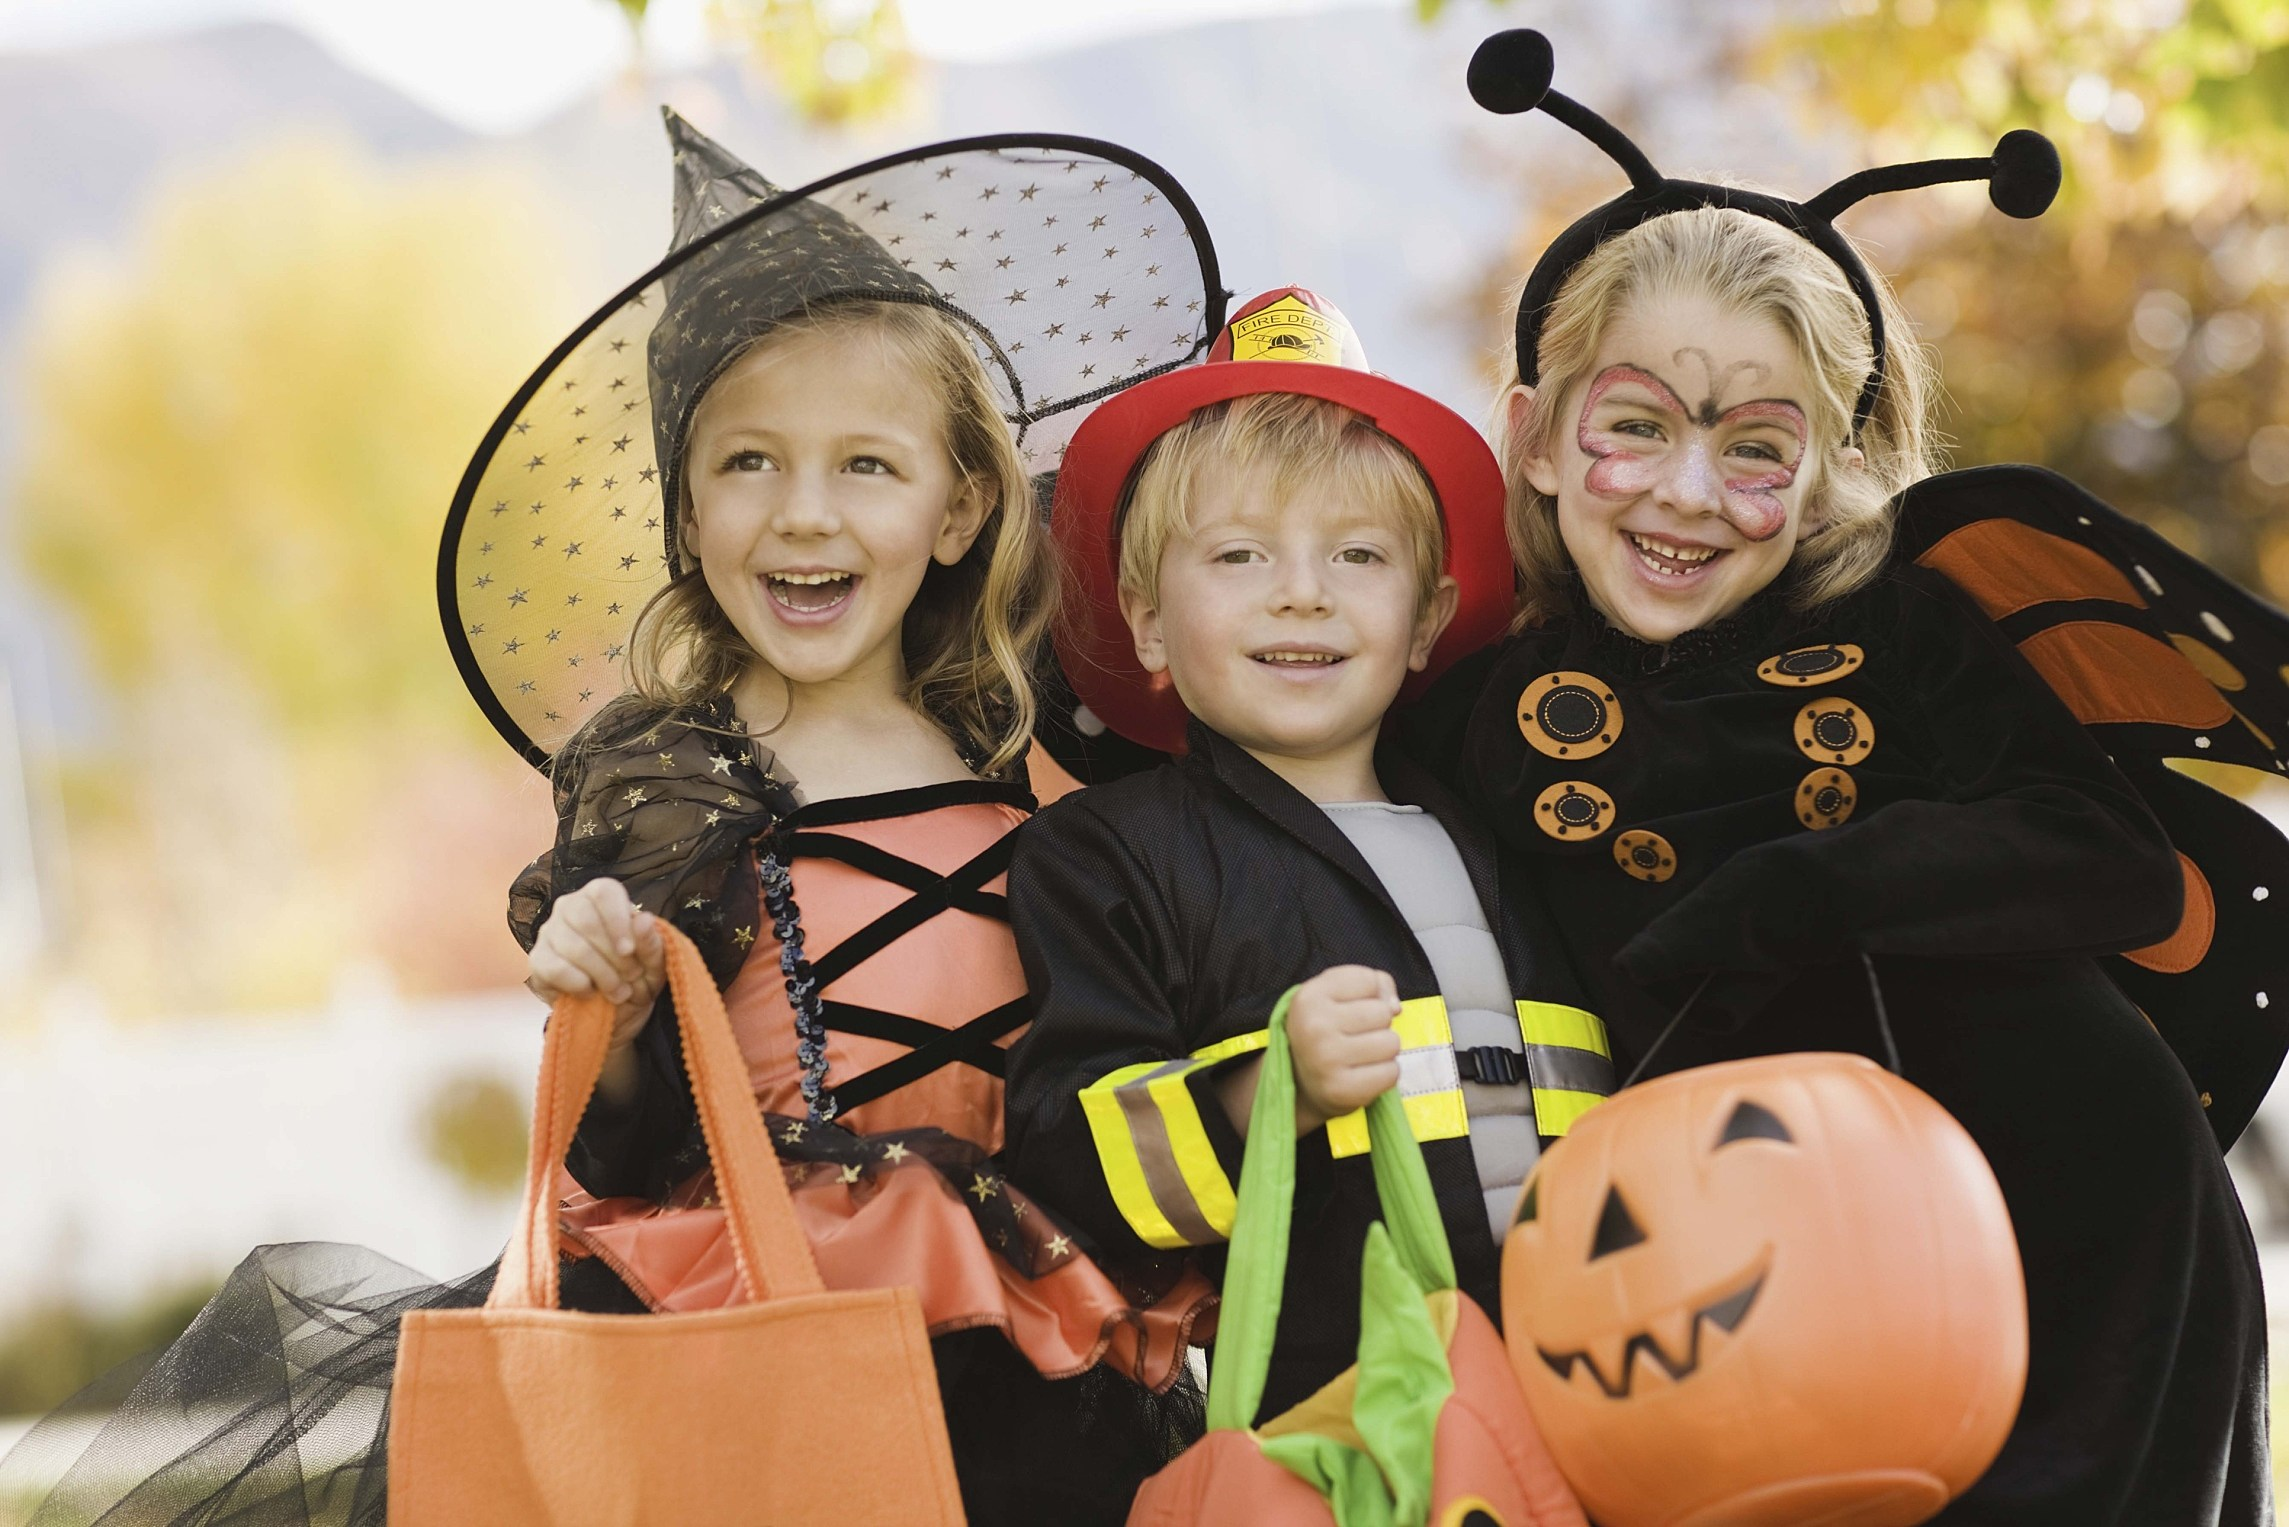 Halloween October 26th 2020 Events Bergen County NJ Halloween Weekend — 23 of the best things to do Oct. 26 28